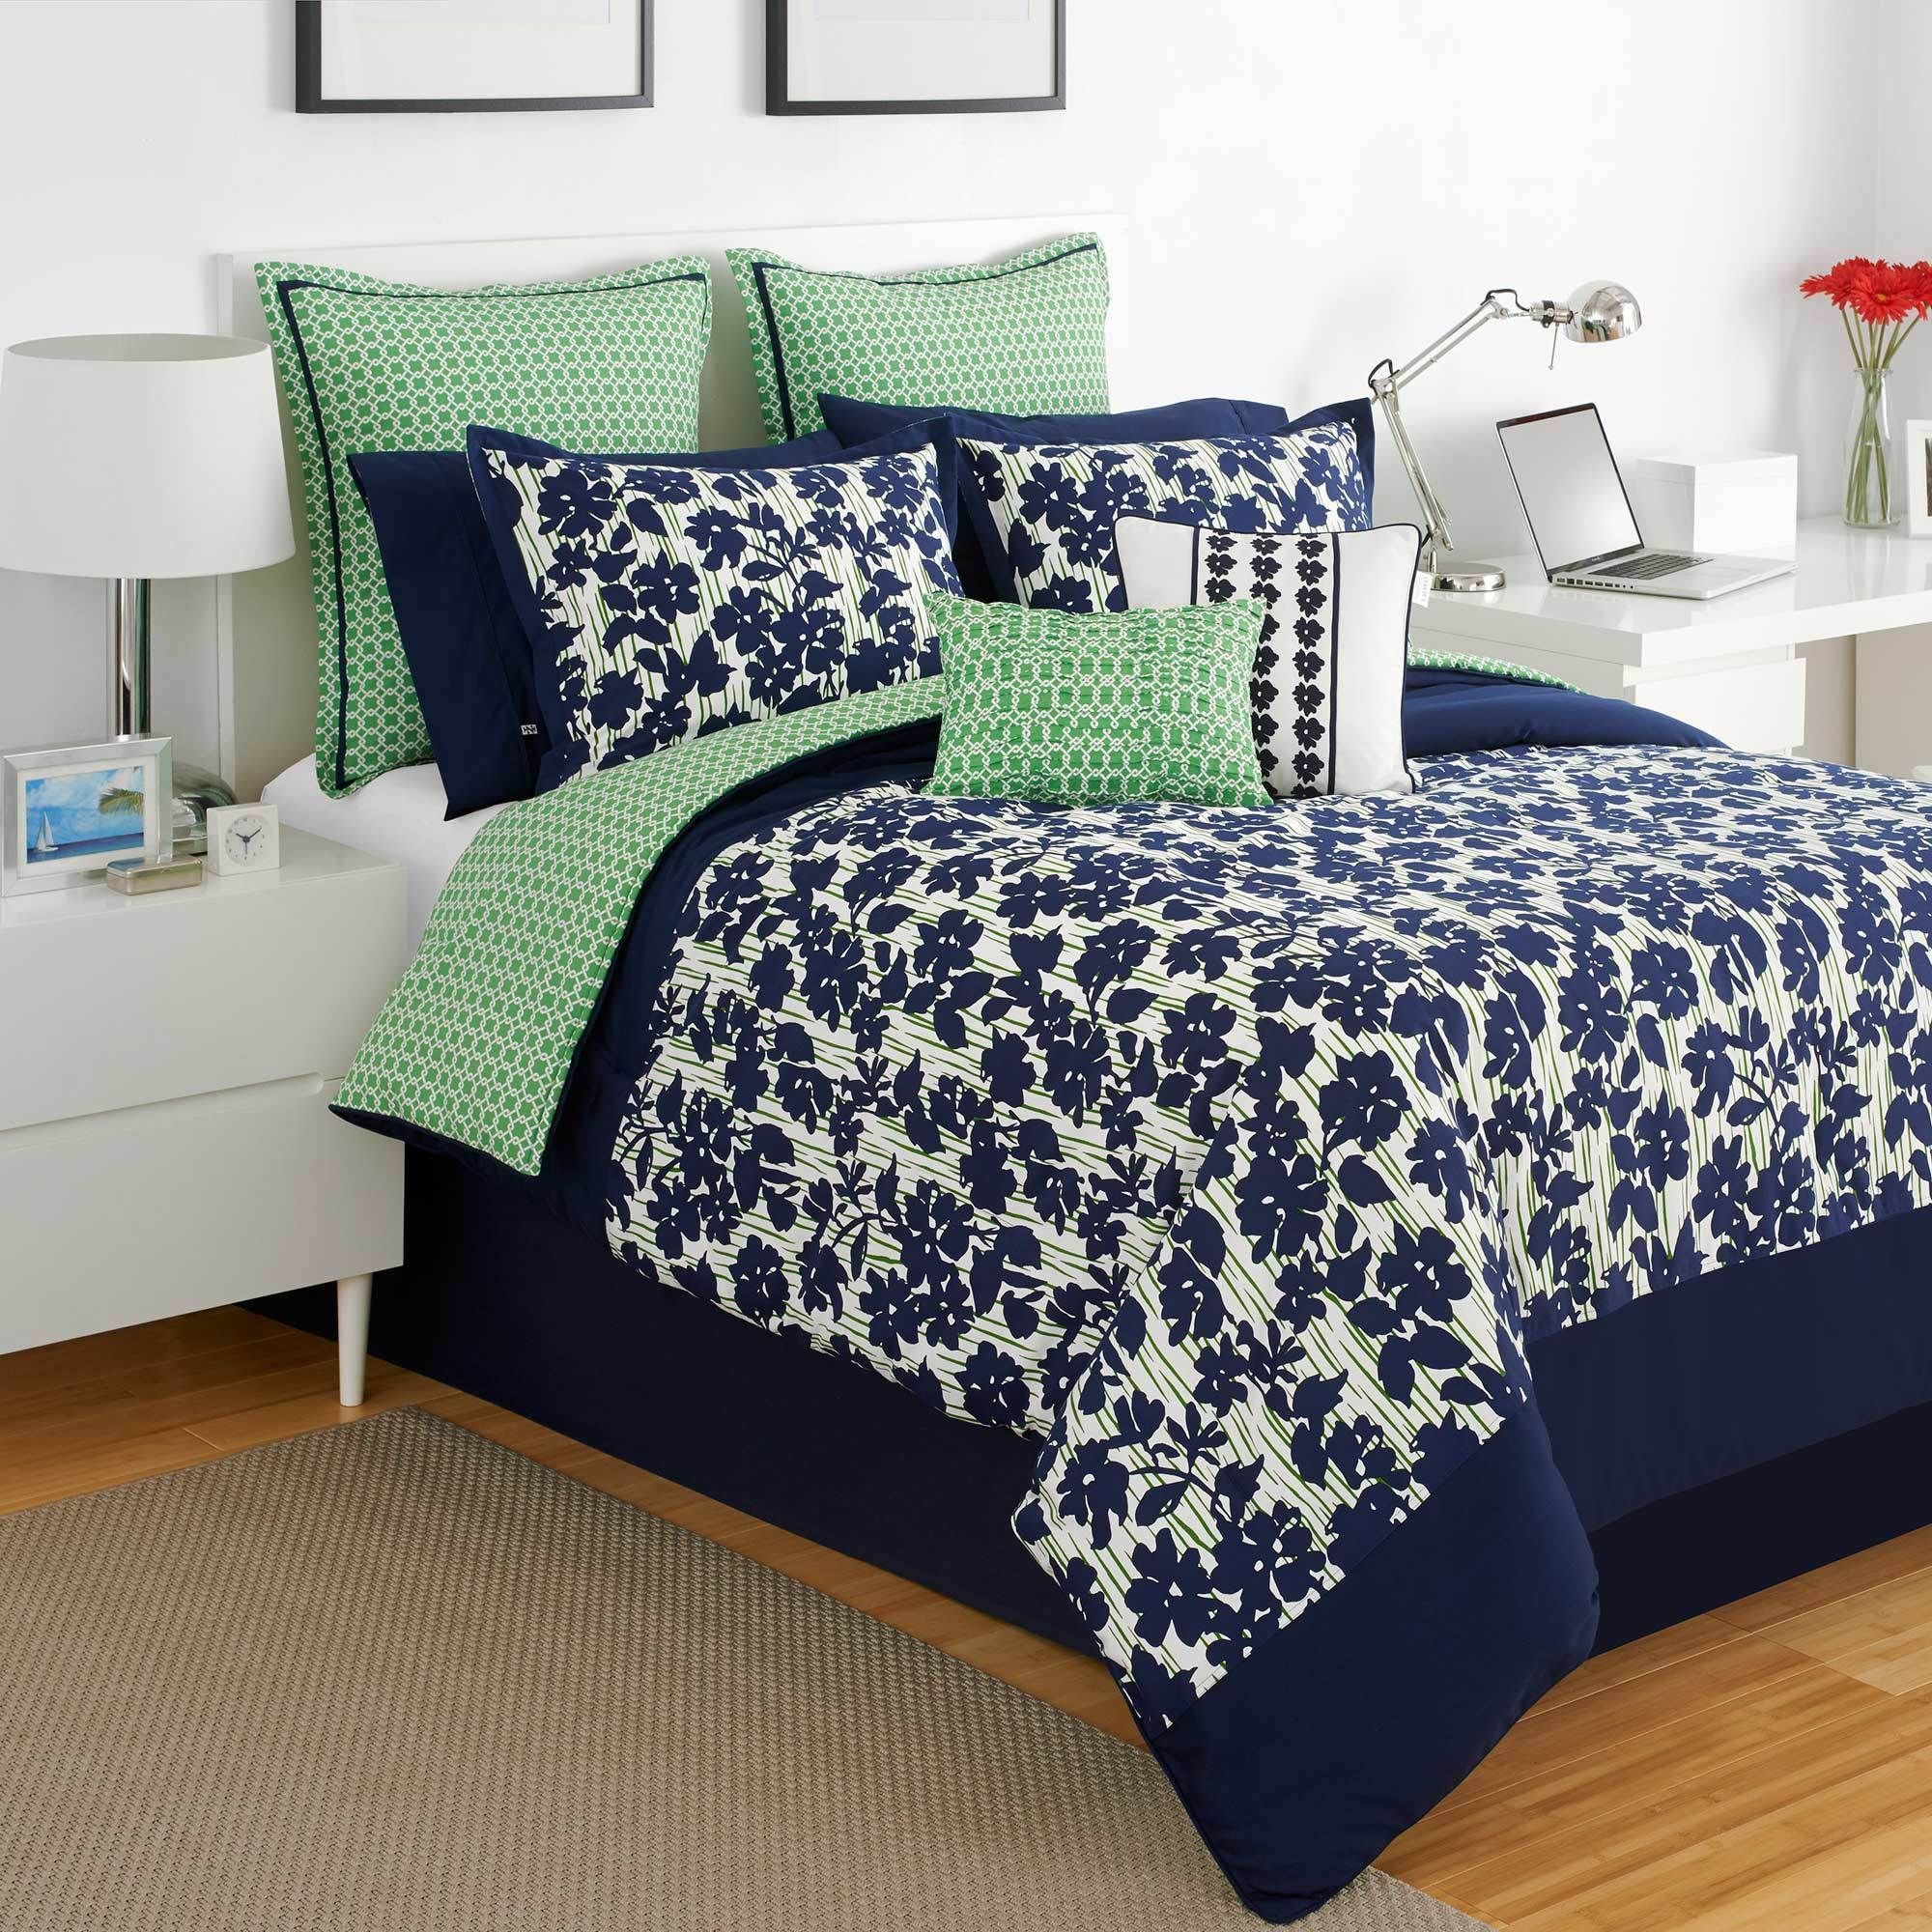 Light blue and white bedding 3 piece lattice trellis comforter set - Fresh And Classic Colors Abound In The Izod Augusta Comforter Set The Comforter Features A